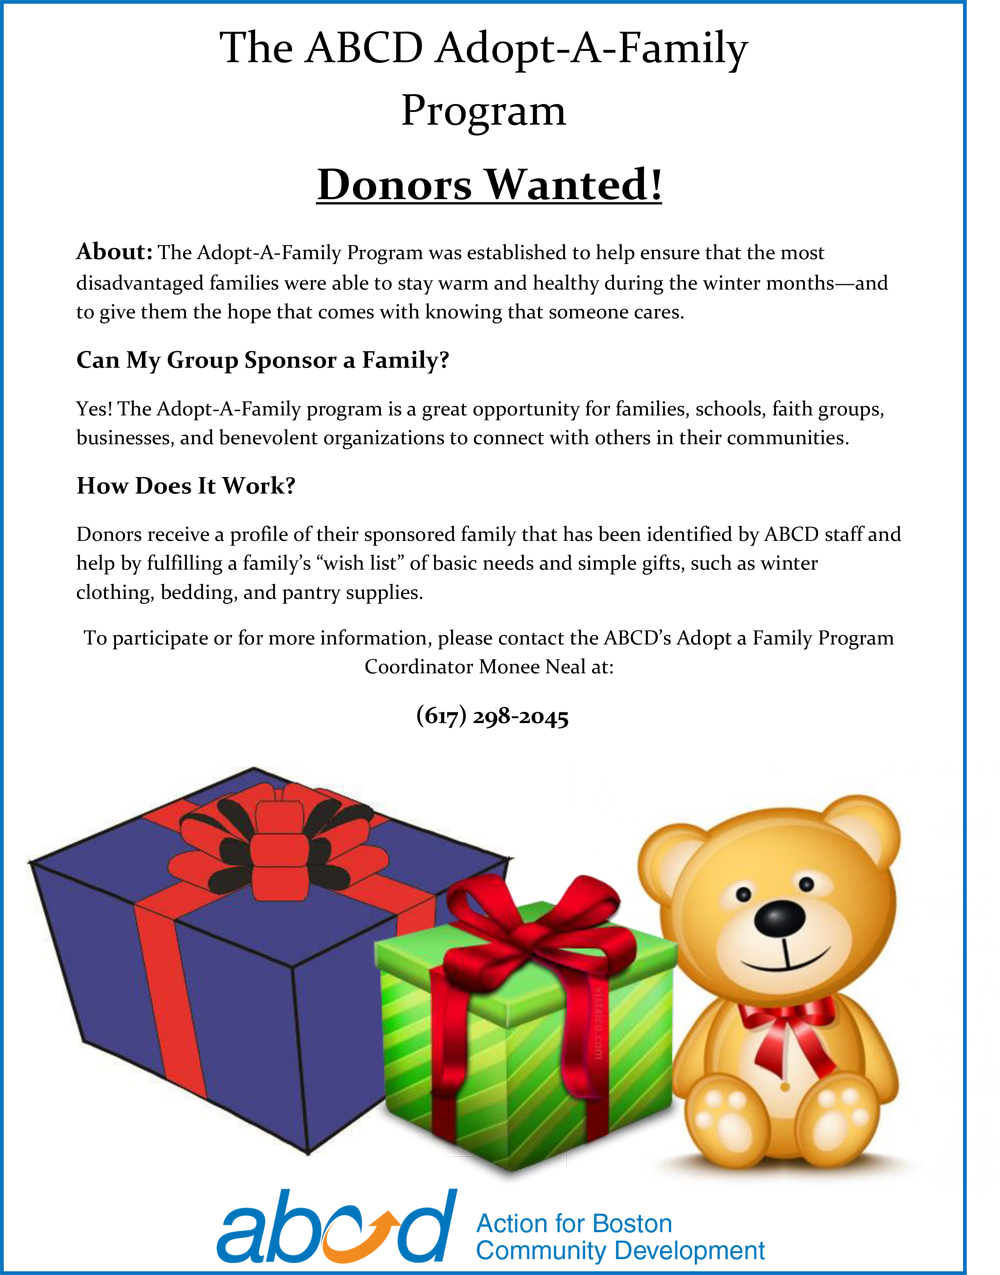 abcd-Adopt-A-Family--Donors-2018.jpg